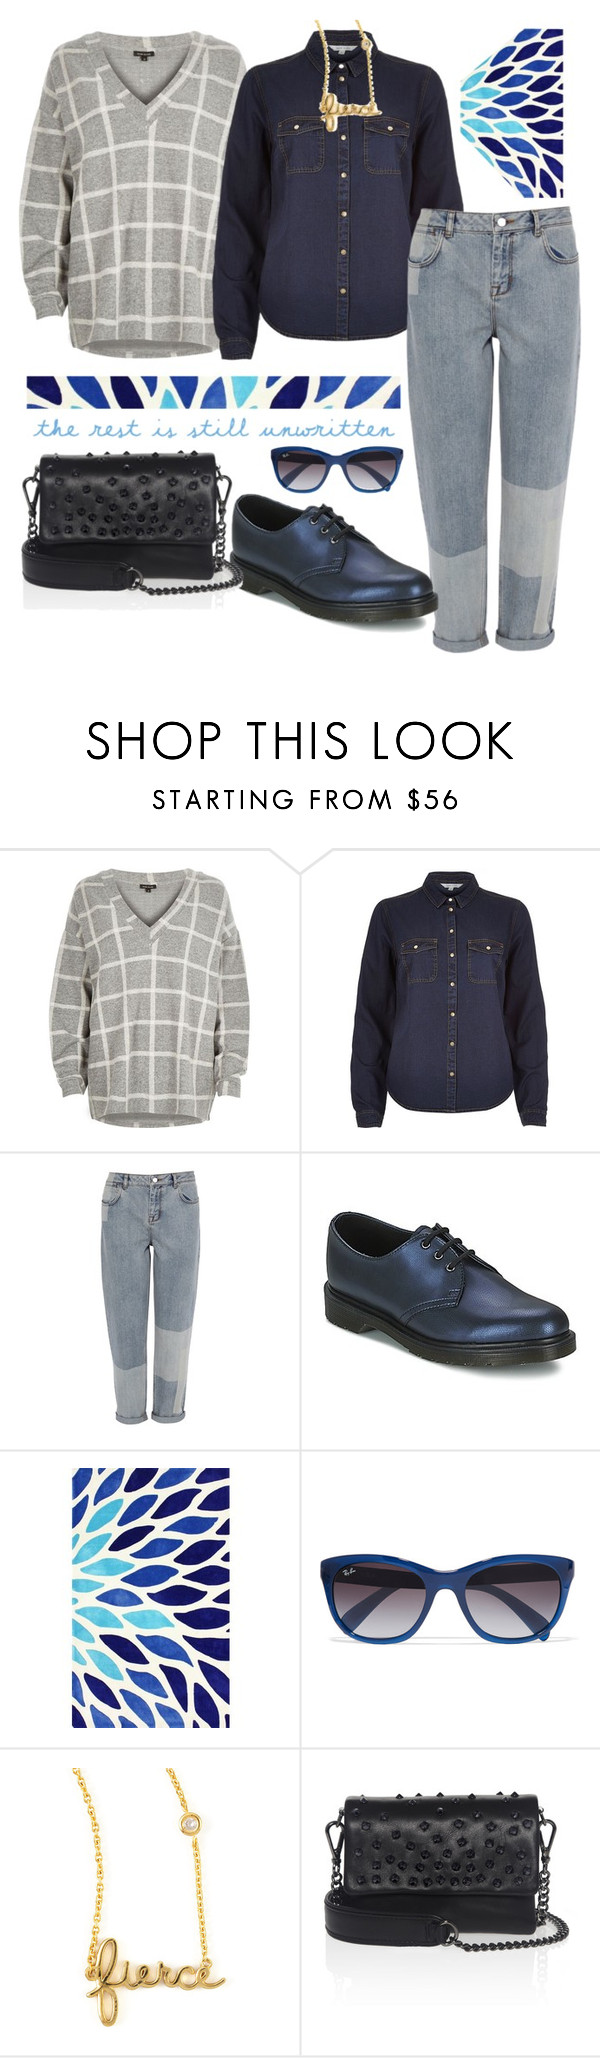 """《☆☆》"" by bluveraa ❤ liked on Polyvore featuring River Island, Karen Millen, Dr. Martens, nuLOOM, Ray-Ban, Sydney Evan, Kurt Geiger, women's clothing, women and female"